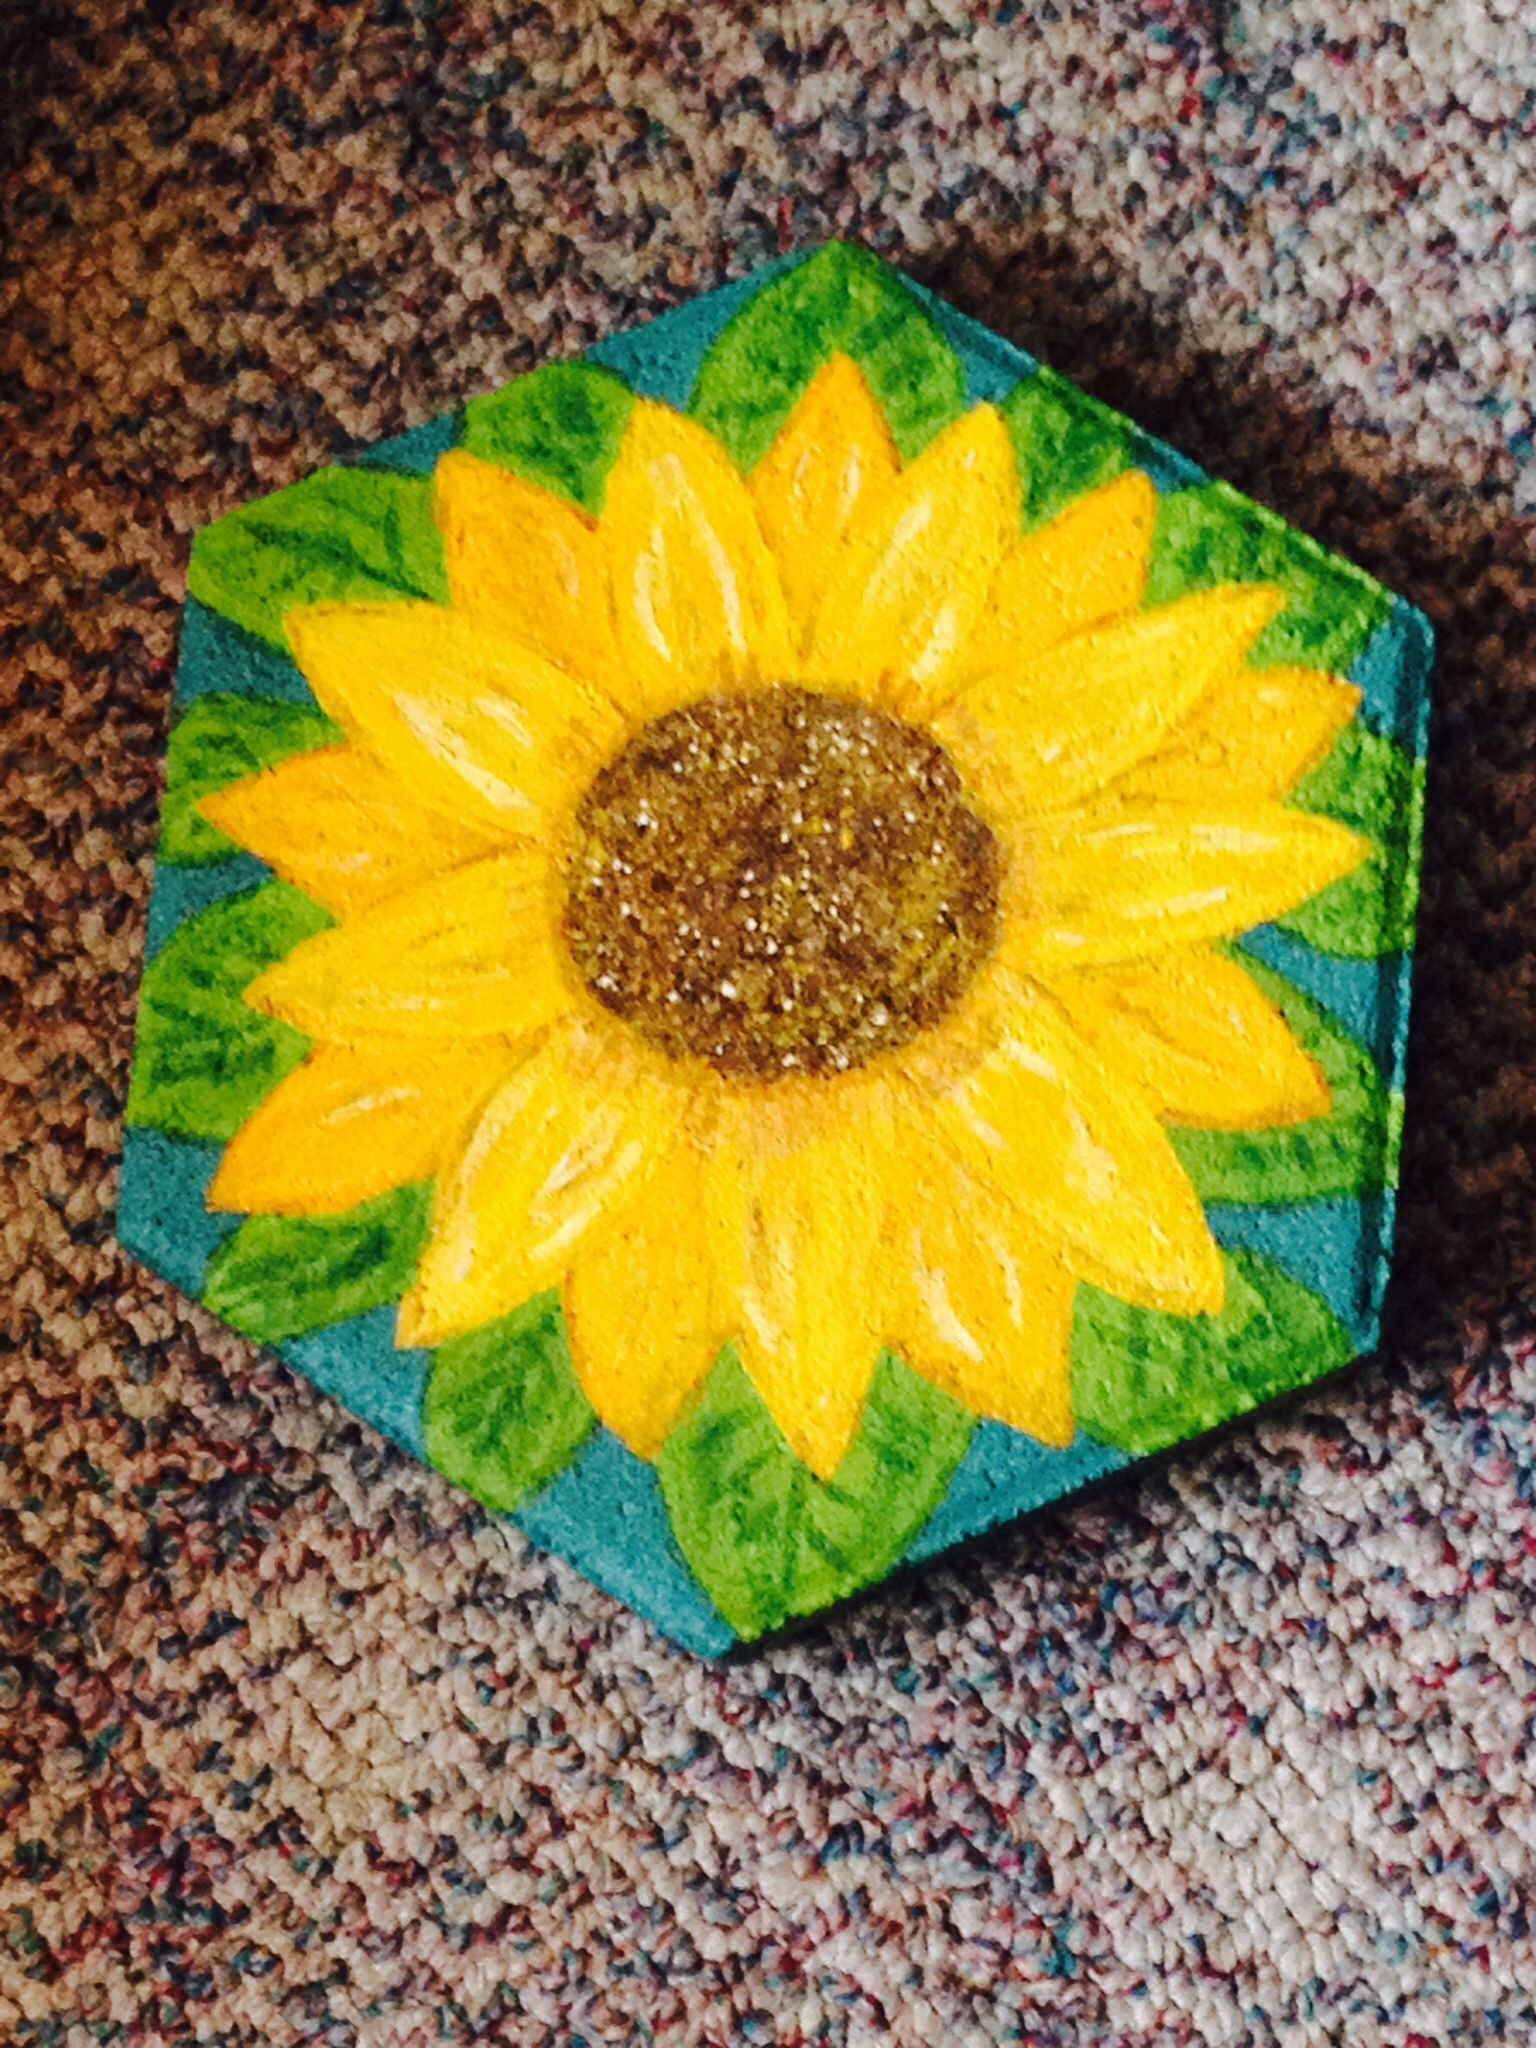 Ordinaire Sunflower Hexagon Cement Paver Stone, Hand Painted To Be Added To My  Butterfly Garden.